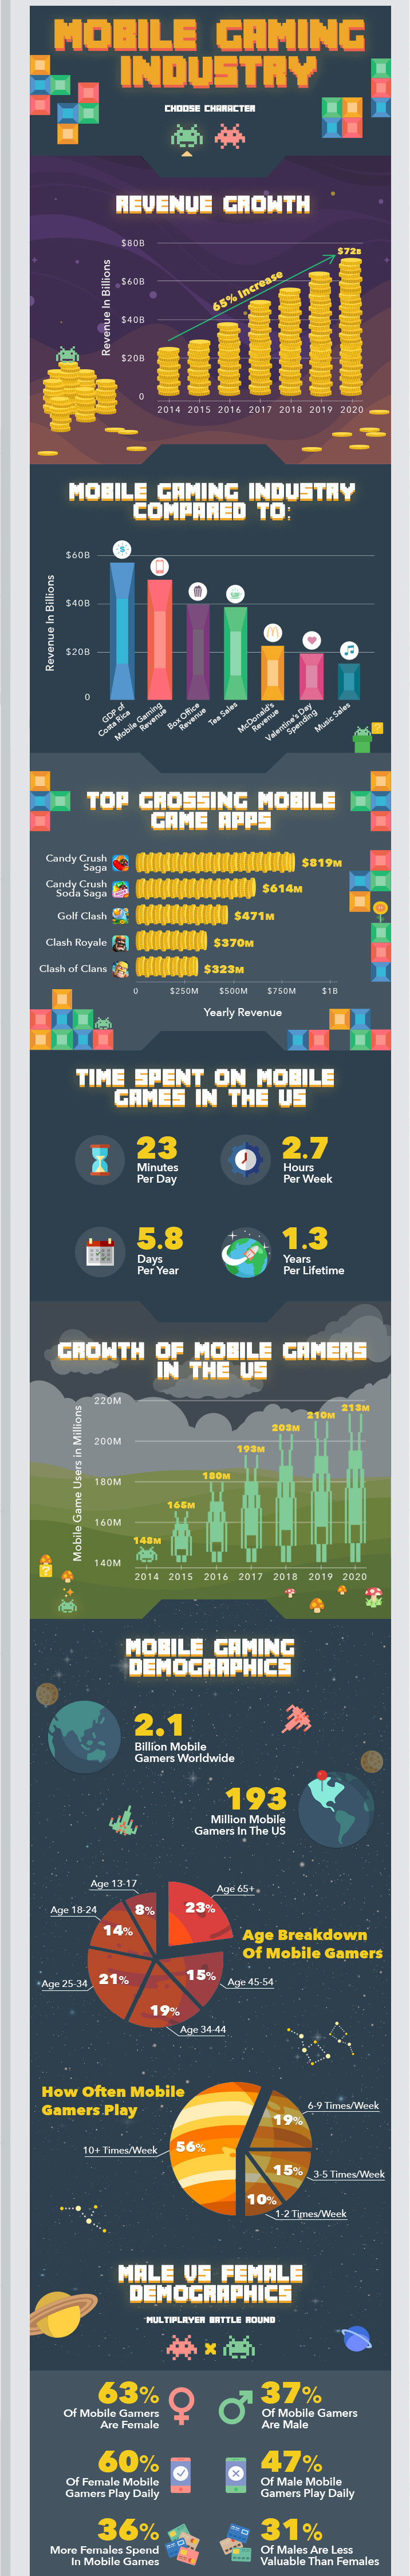 Mobile Game study females overpopulate male players statistics demographics infographics